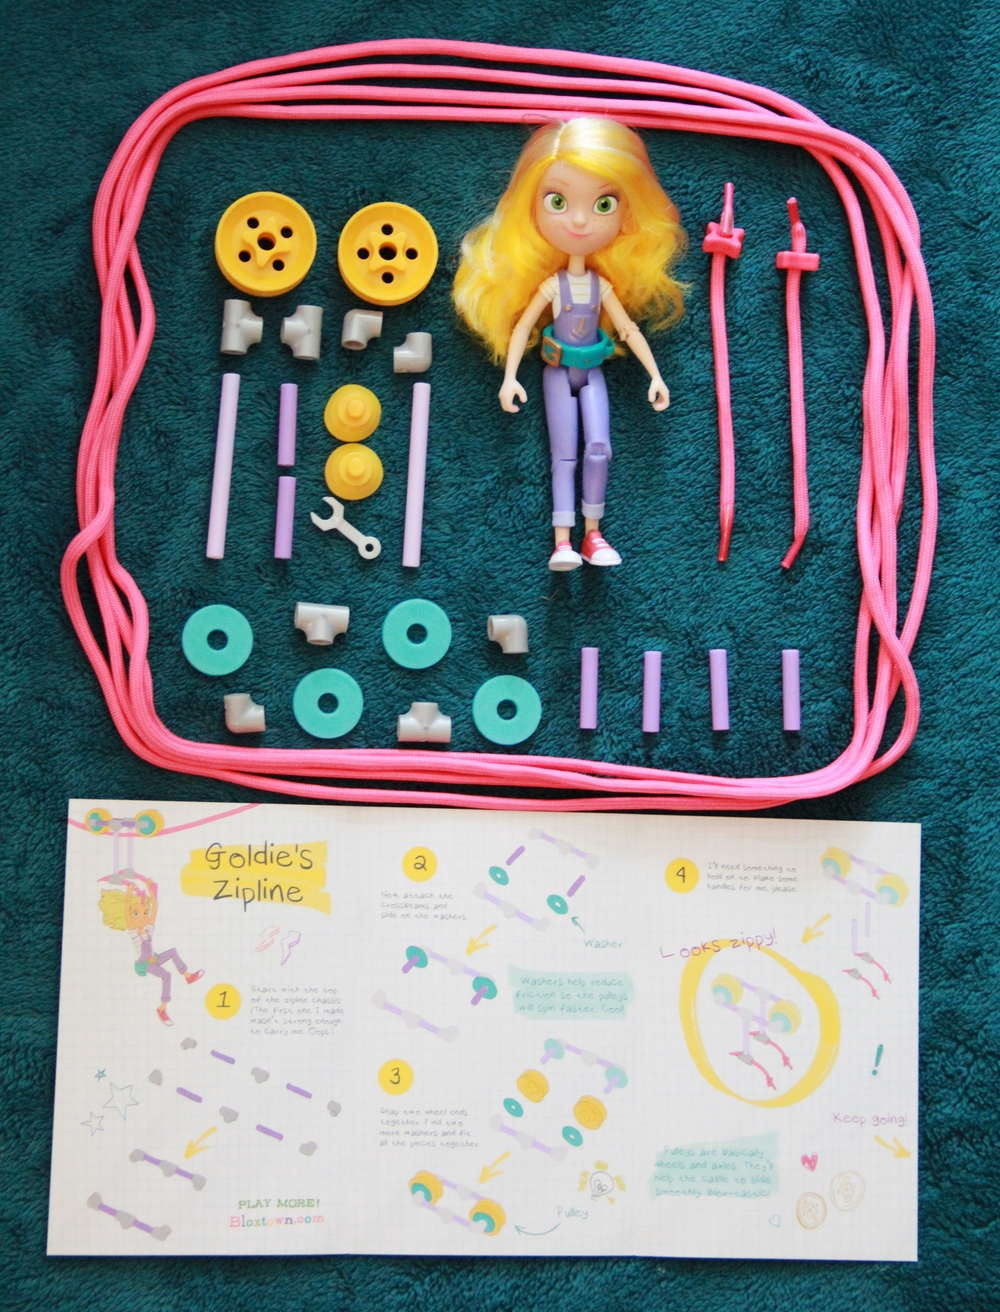 Goldieblox - Goldie.JPG